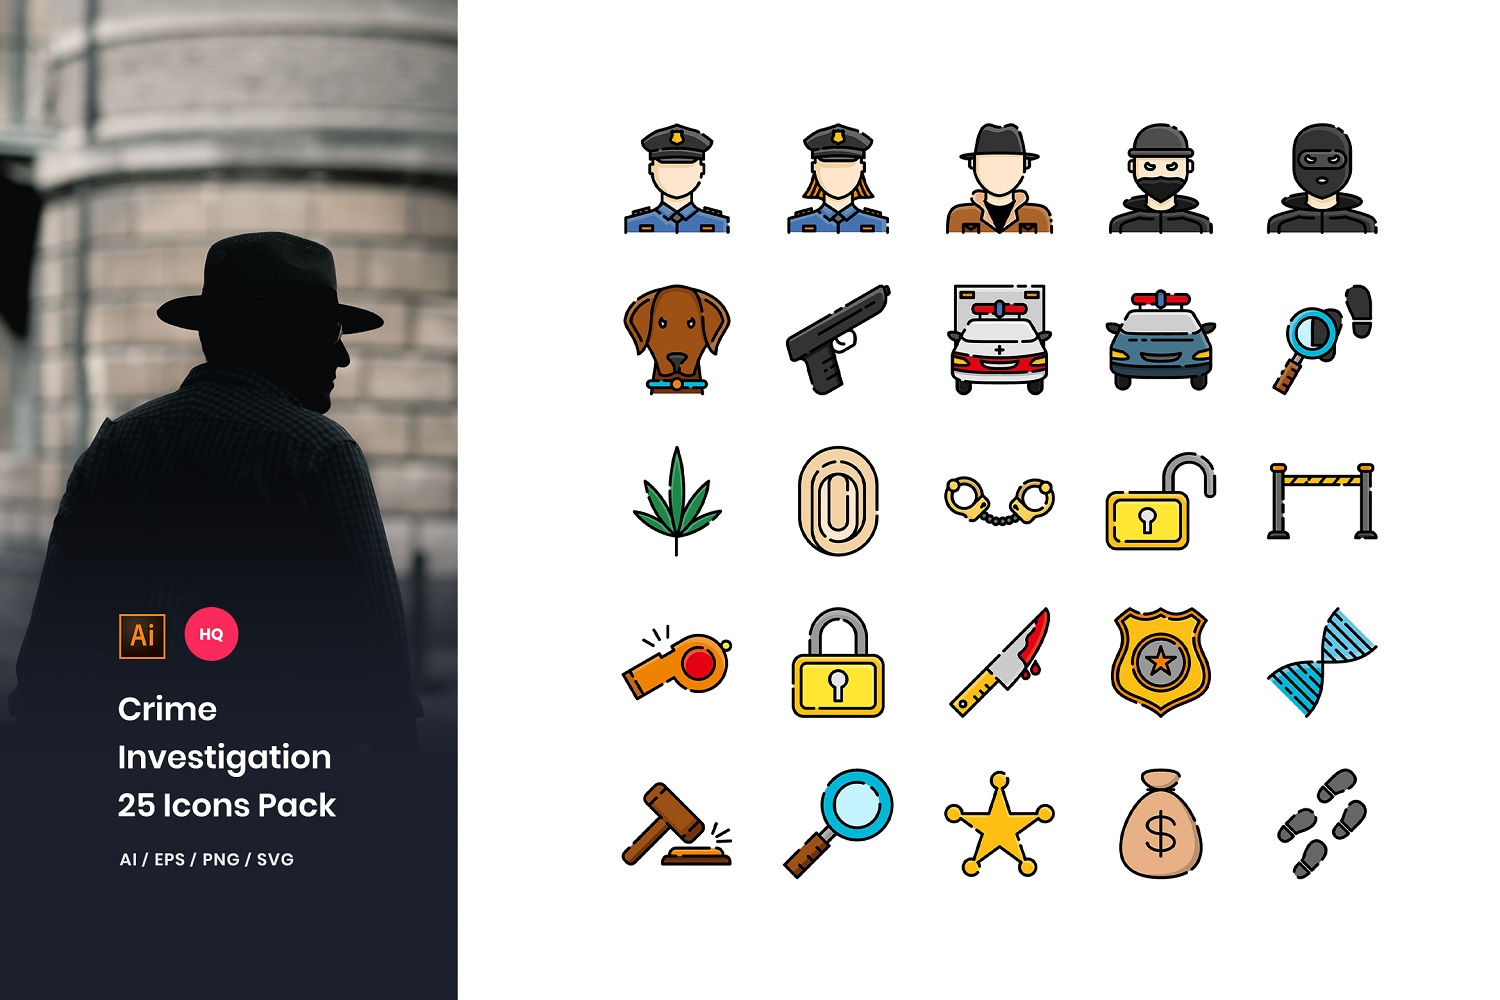 Crime Investigation Pack Iconset Template